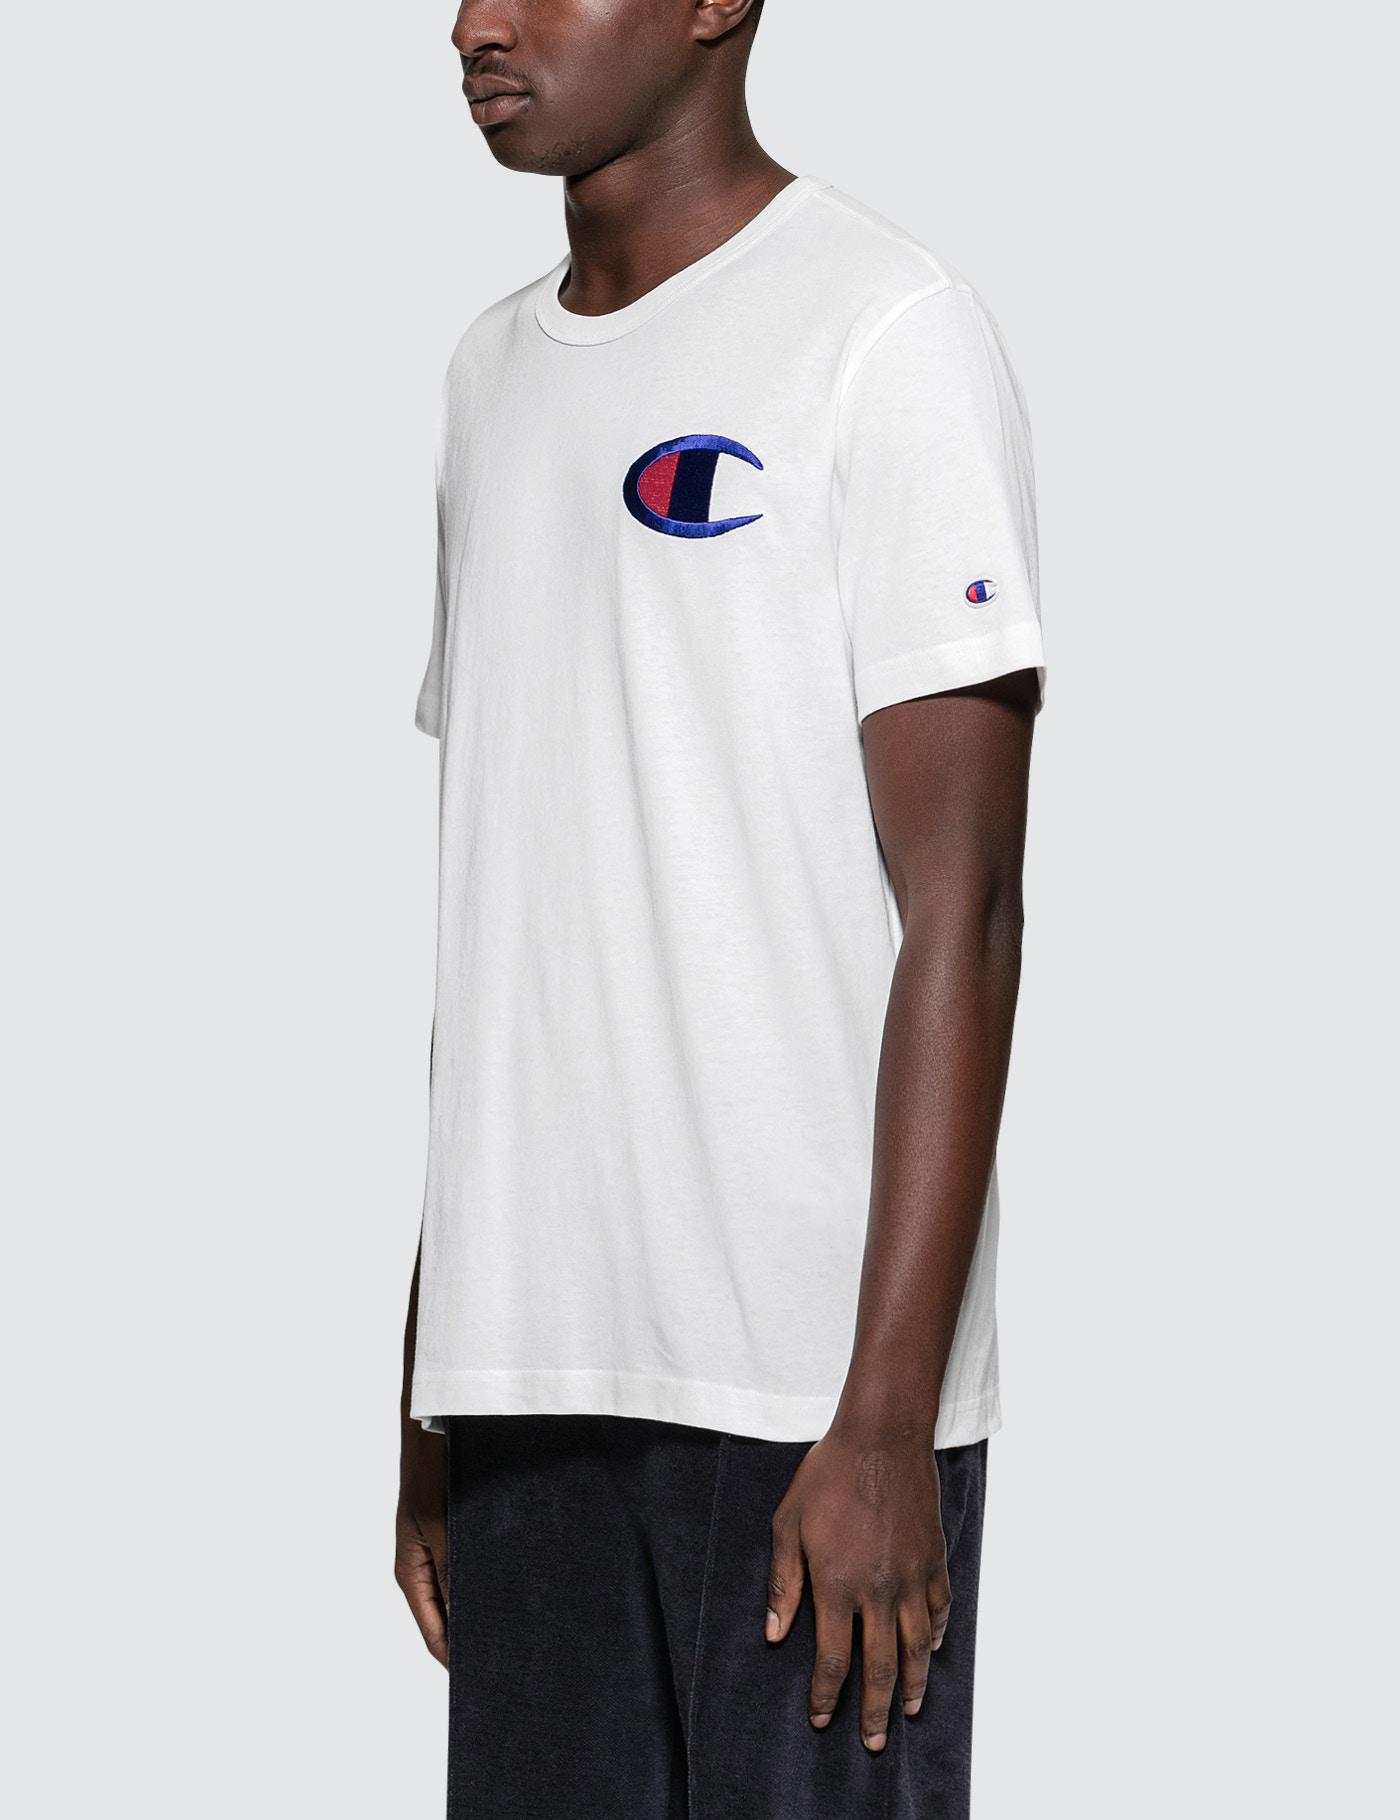 f5642727ea26 Champion Big Logo S/s T-shirt in White for Men - Lyst